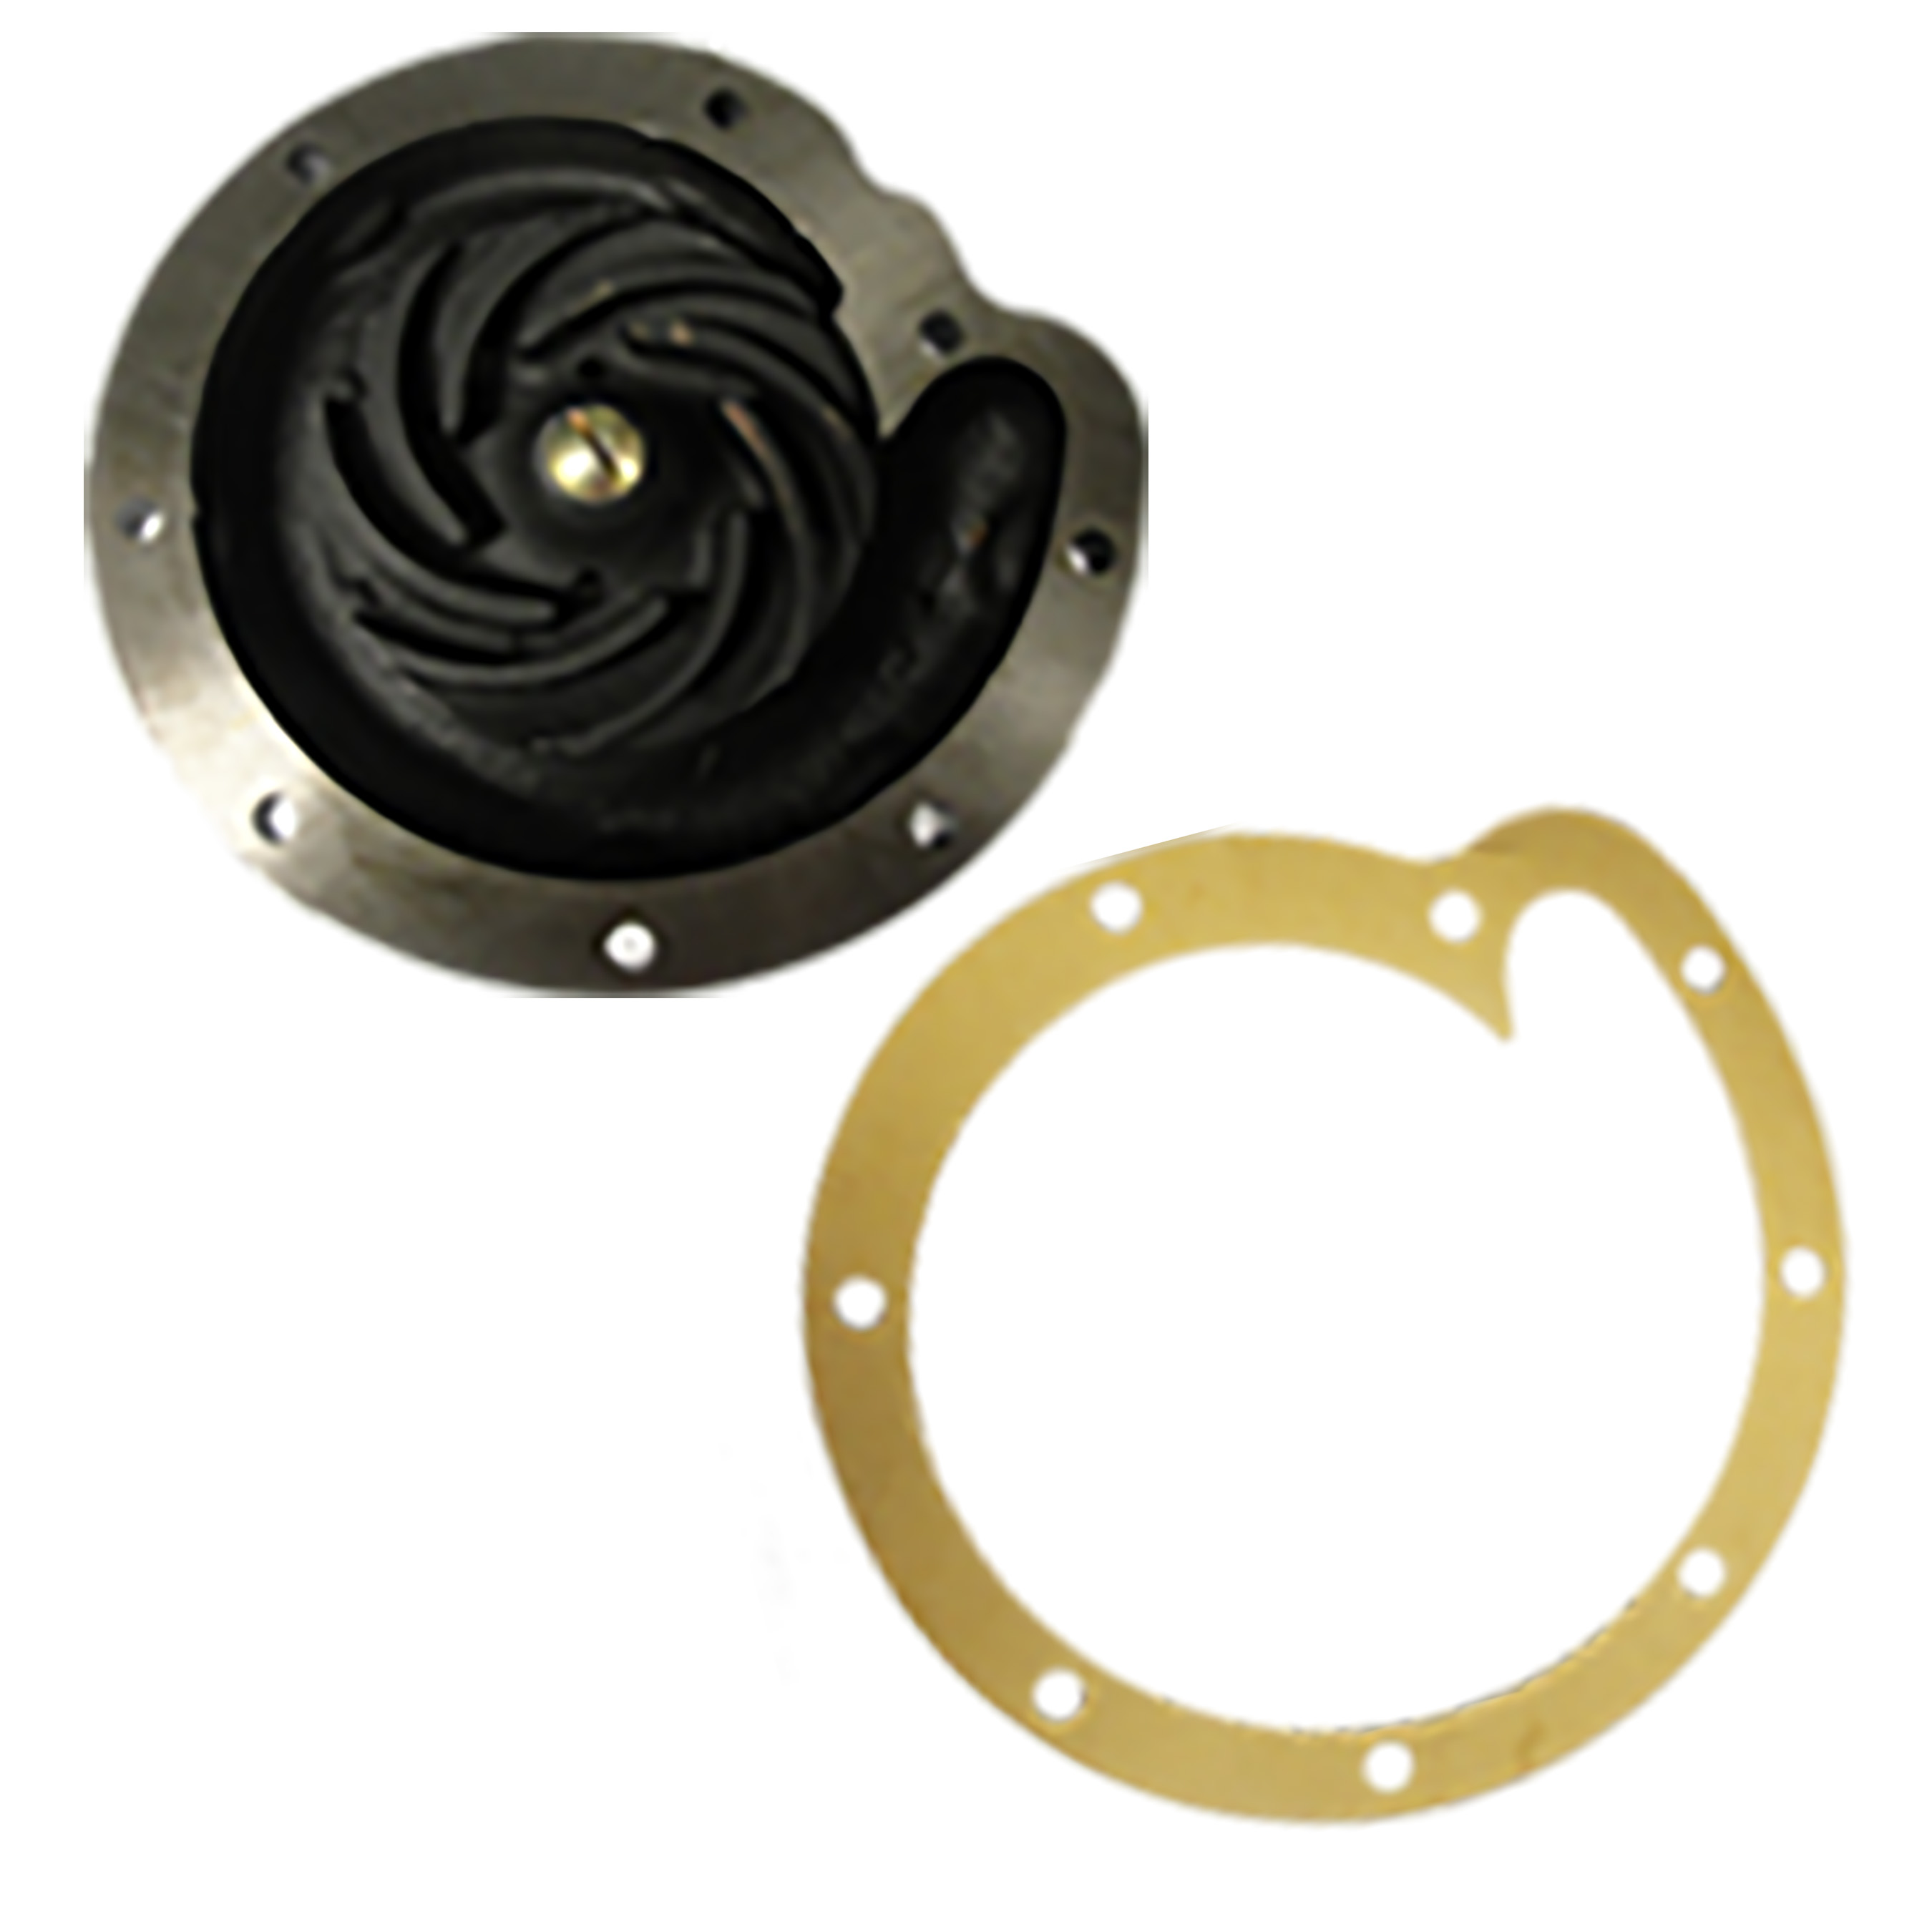 International Harvester Water Pump Gasket is included.